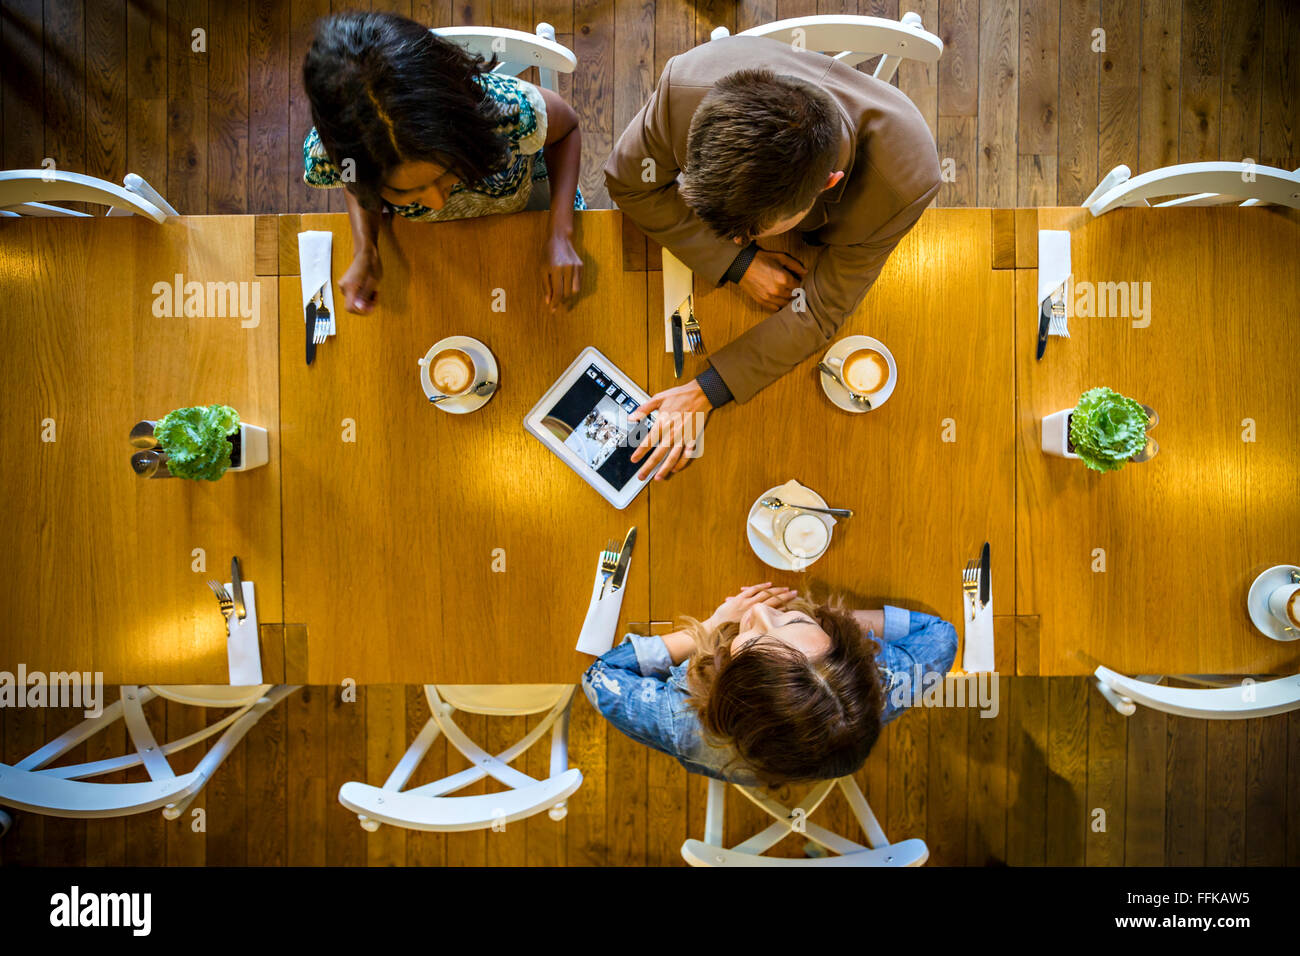 Friends using digital tablet in restaurant - Stock Image